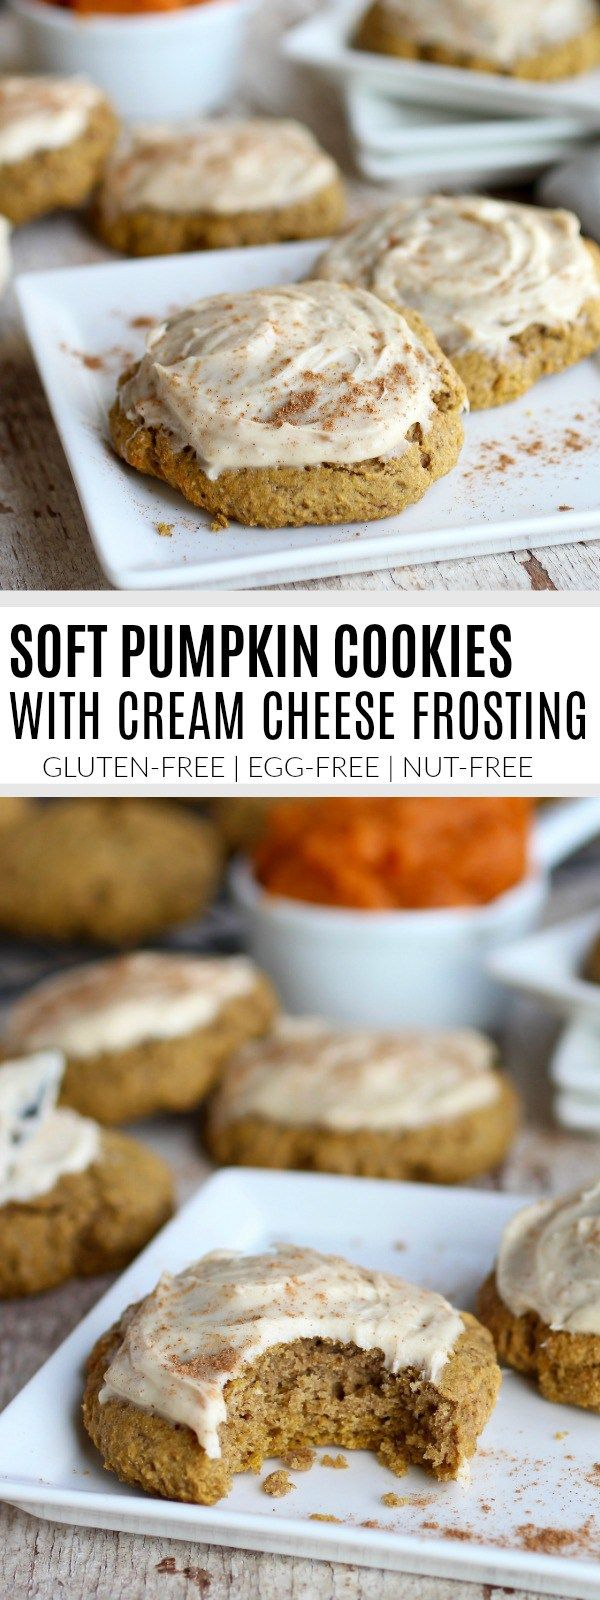 Soft Gluten-free Pumpkin Cookies with Cream Cheese Frosting